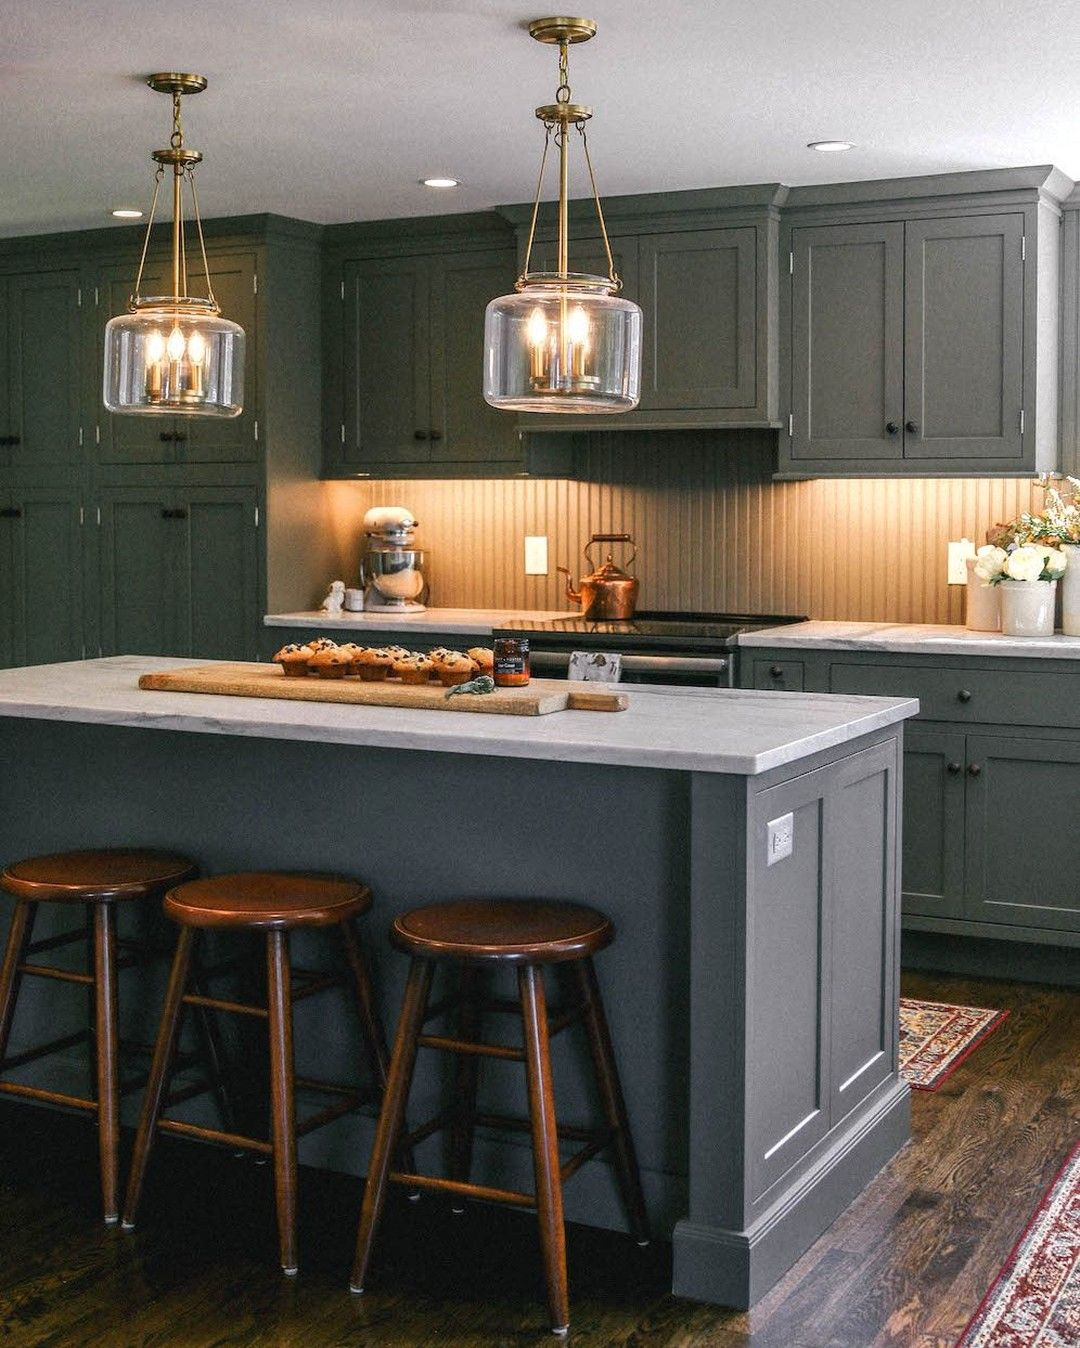 Dark Cabinets Are Trending And Thecoastalconfidence Knows How To Make Them Shine Lake House Kitchen Kitchen Style Colonial Kitchen